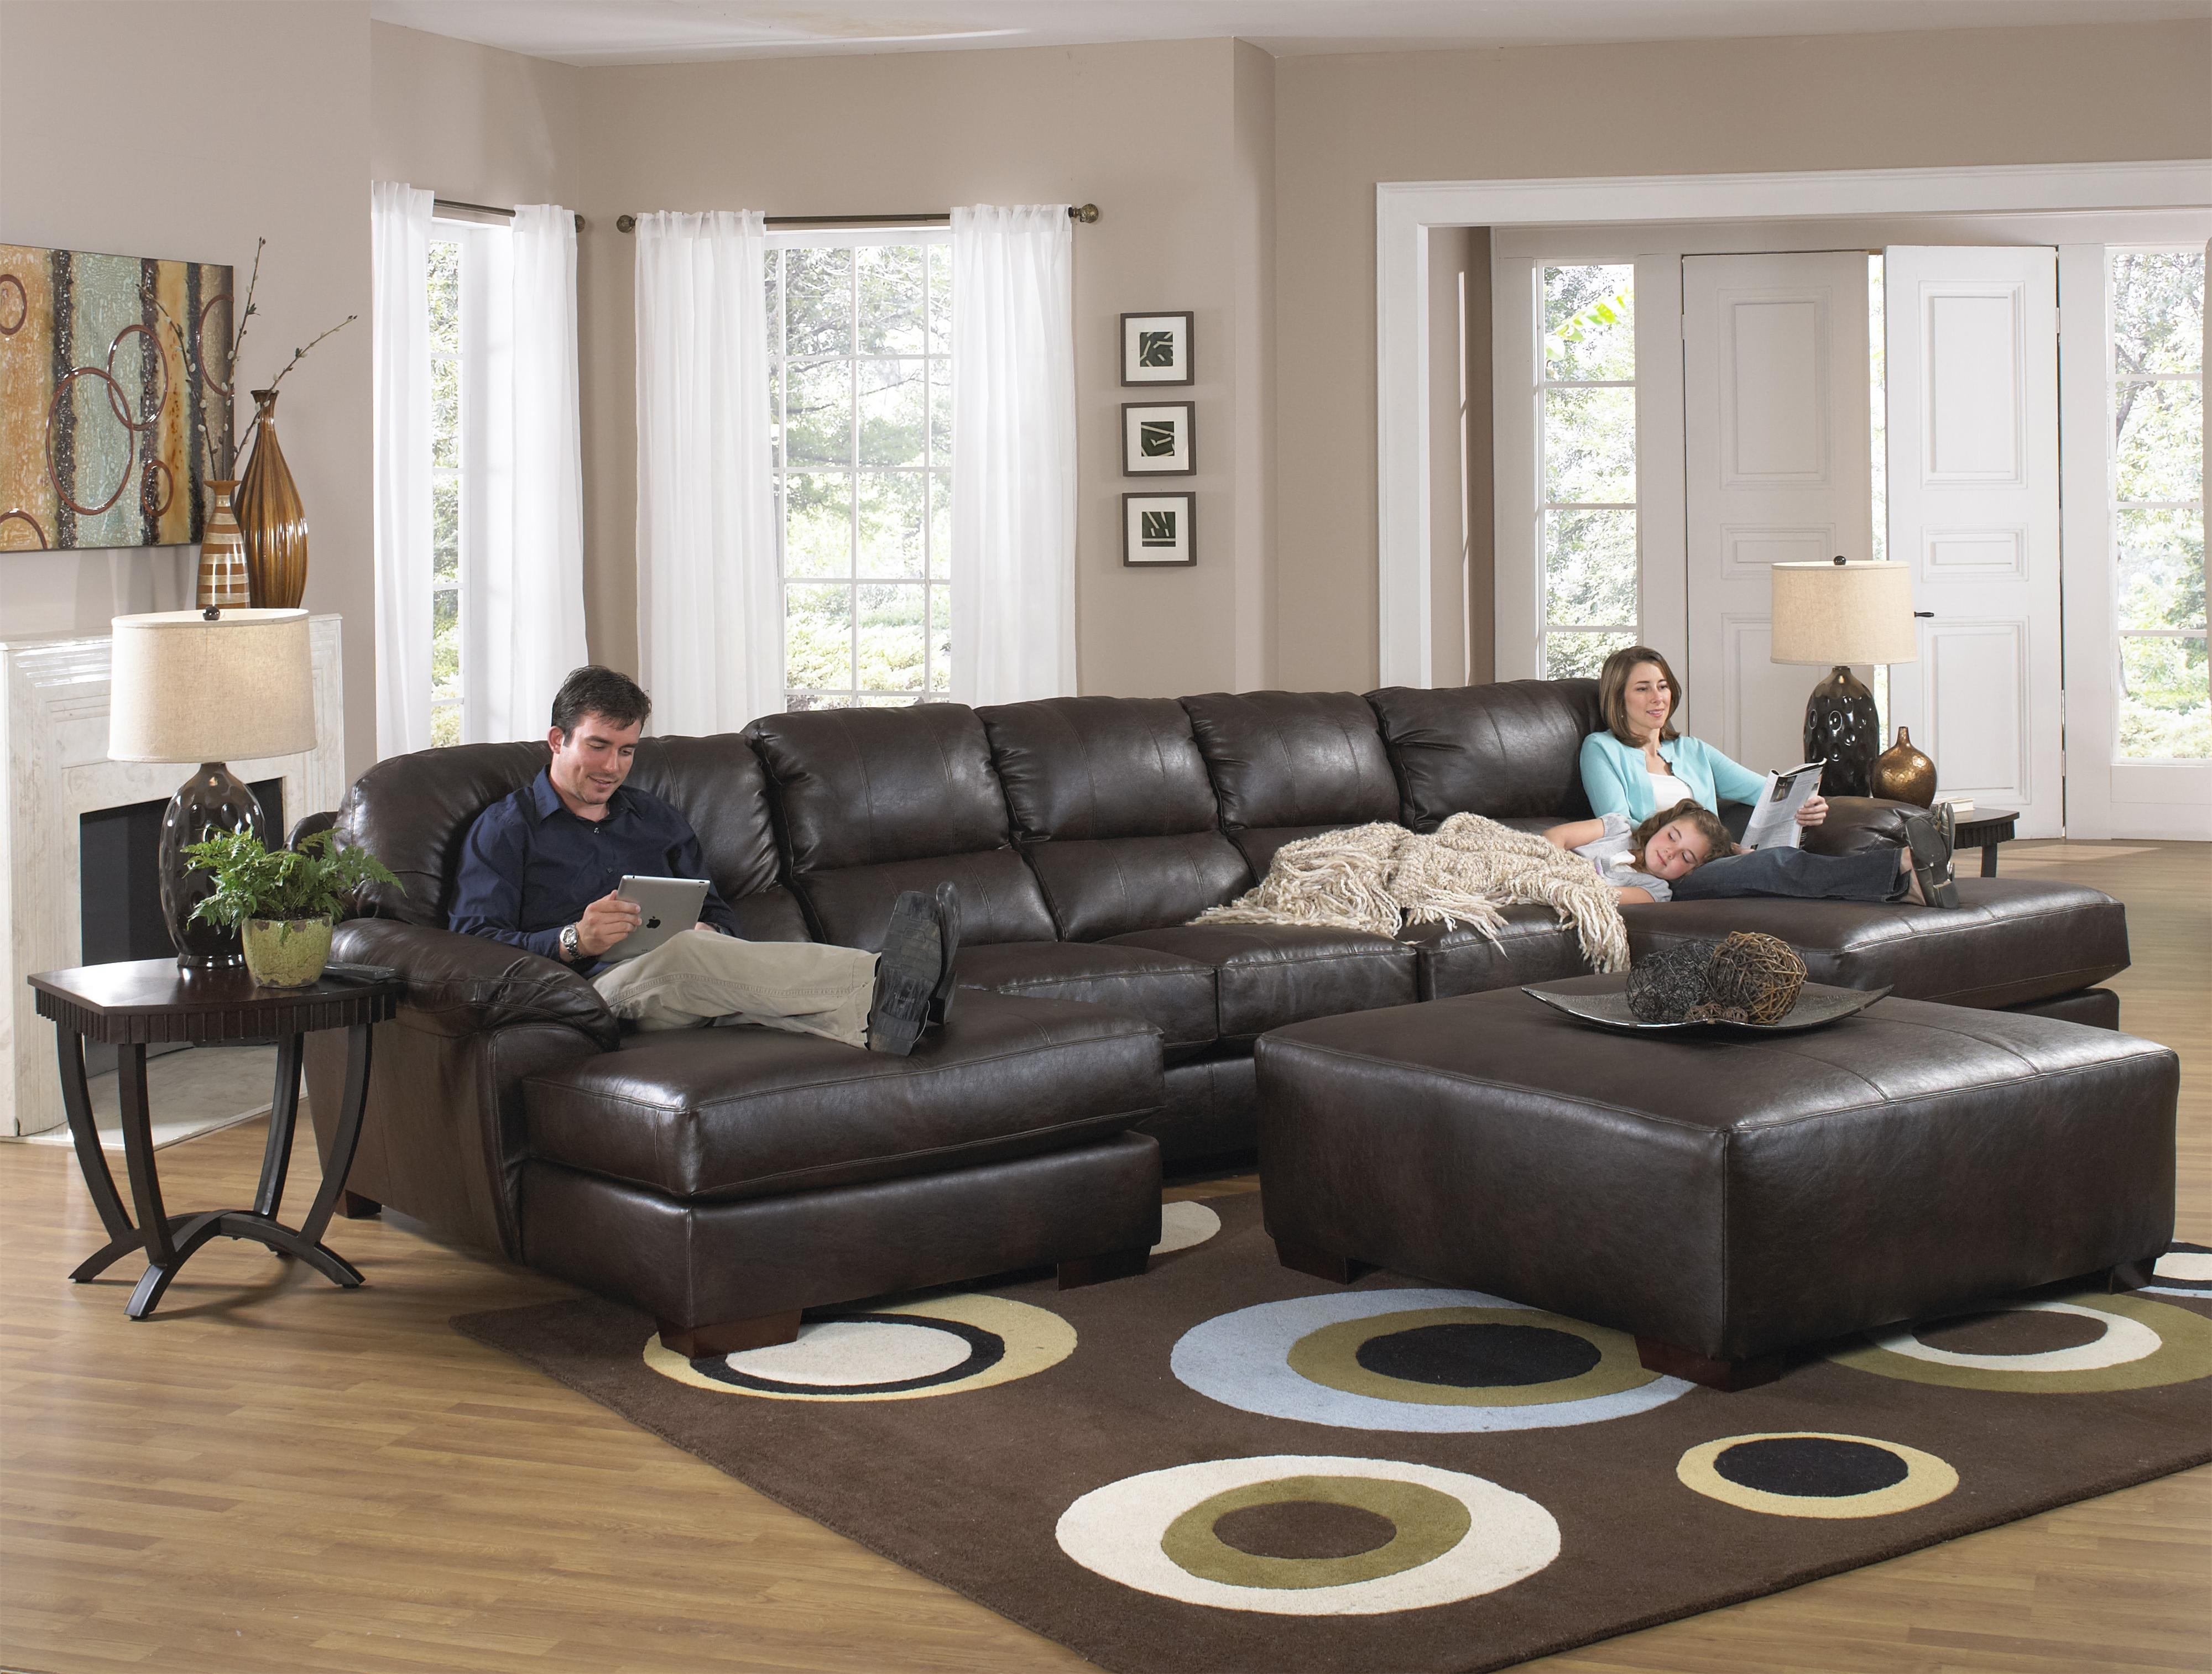 2017 Sectional Sofas With Chaise And Ottoman Within Sofa : Beautiful Large Sectional Sofa With Chaise L Shaped Cream (View 2 of 15)